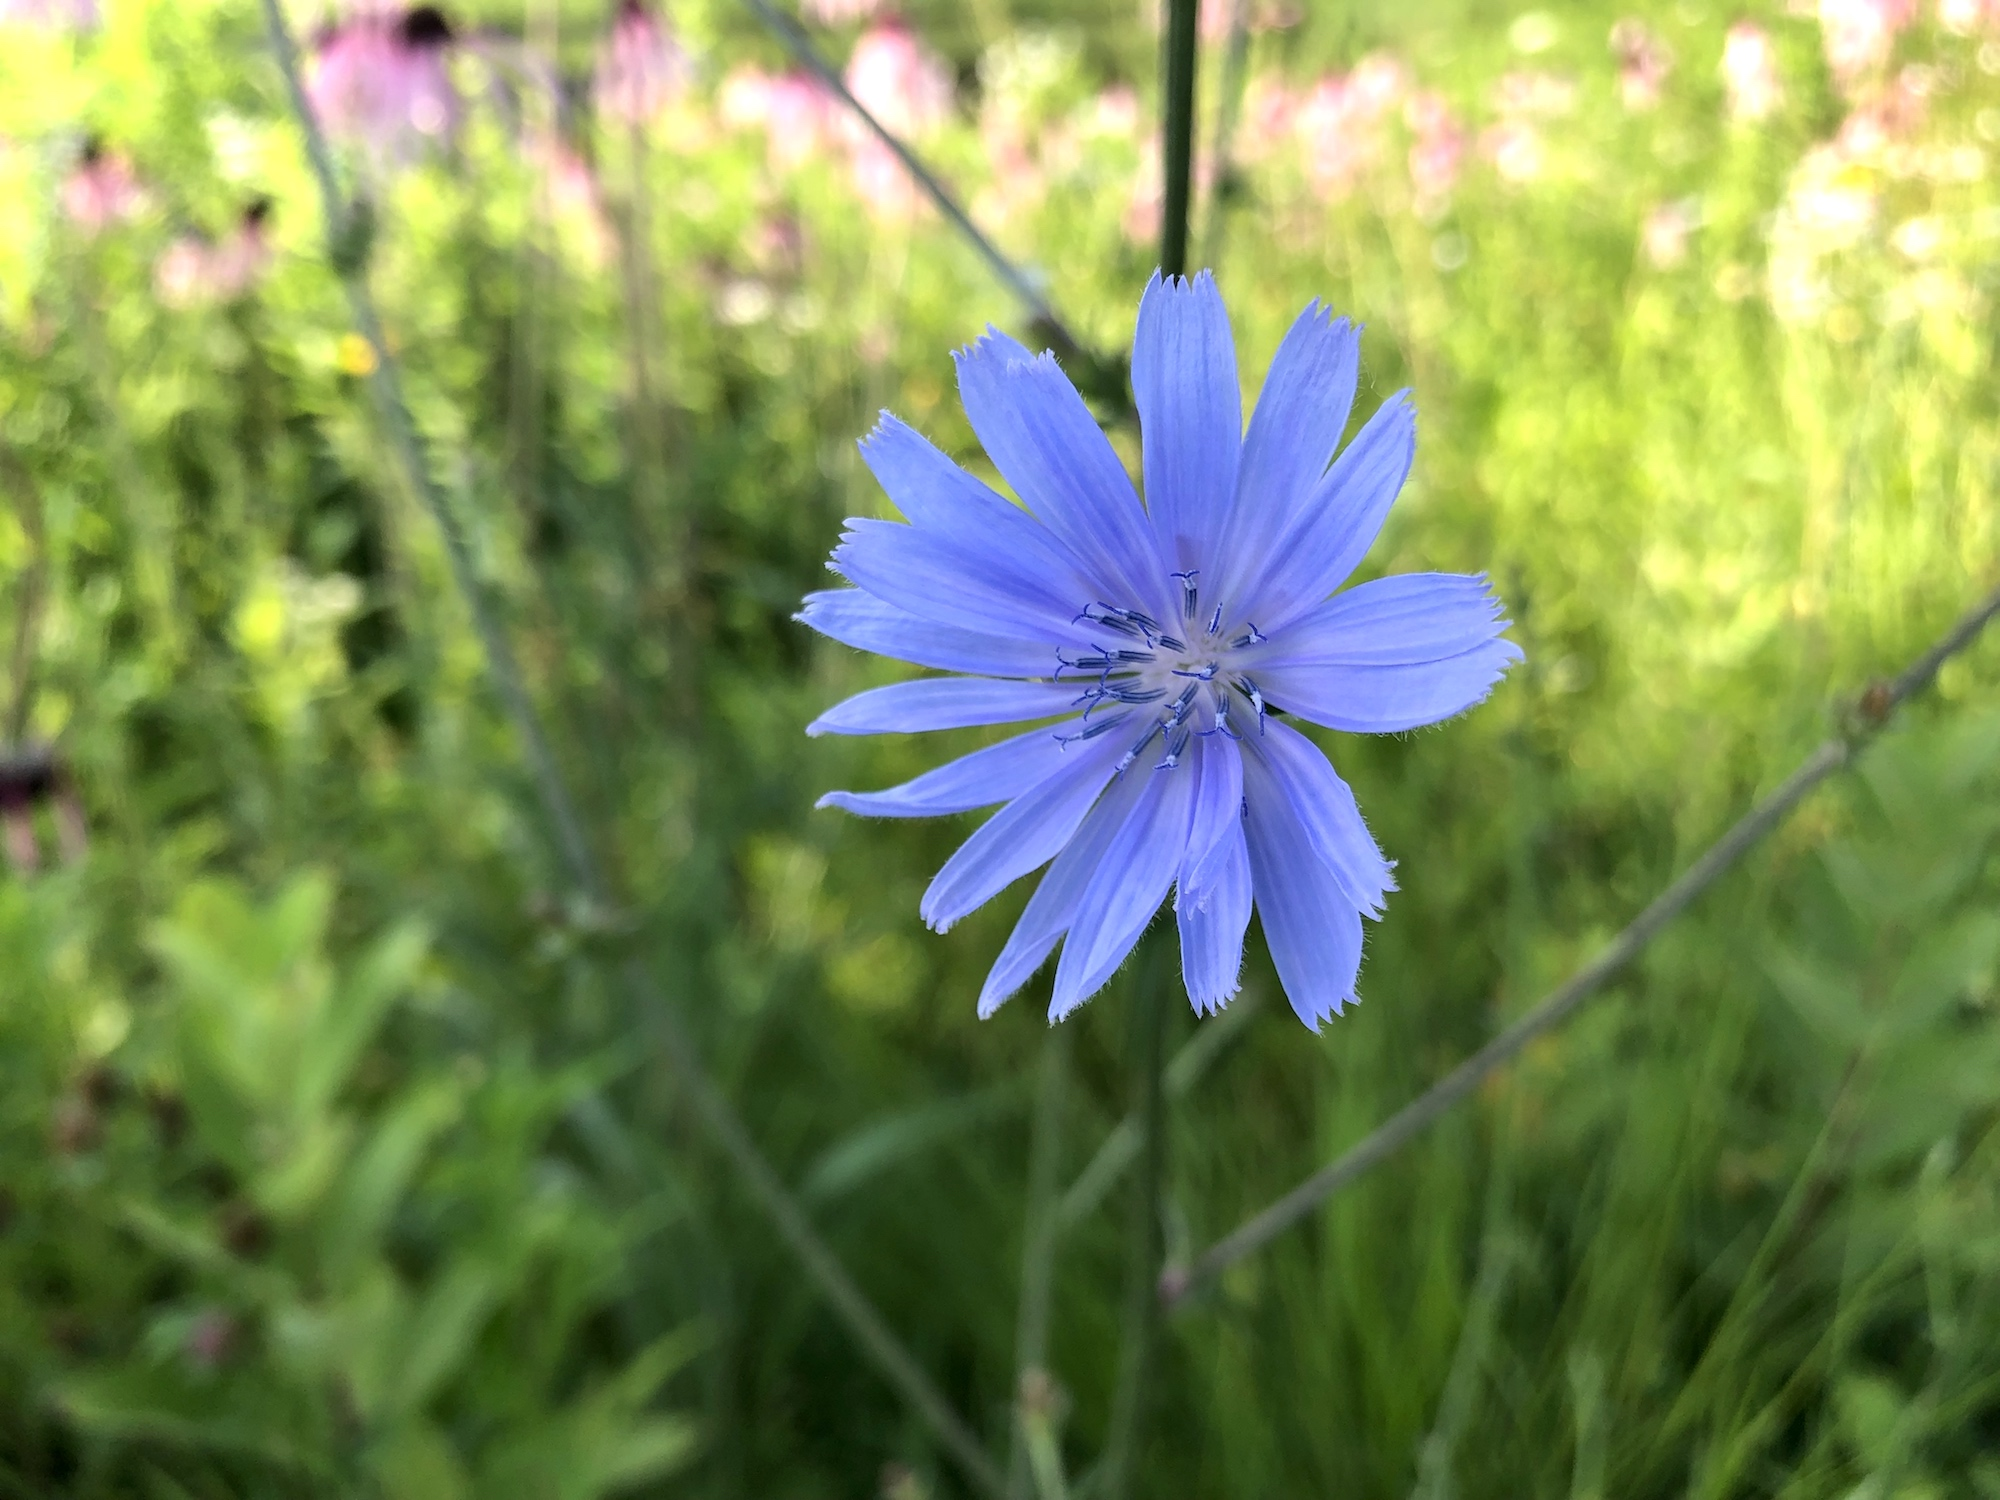 Chicory on banks of Retaining Pond in Madison, Wisconsin on July 5, 2019.